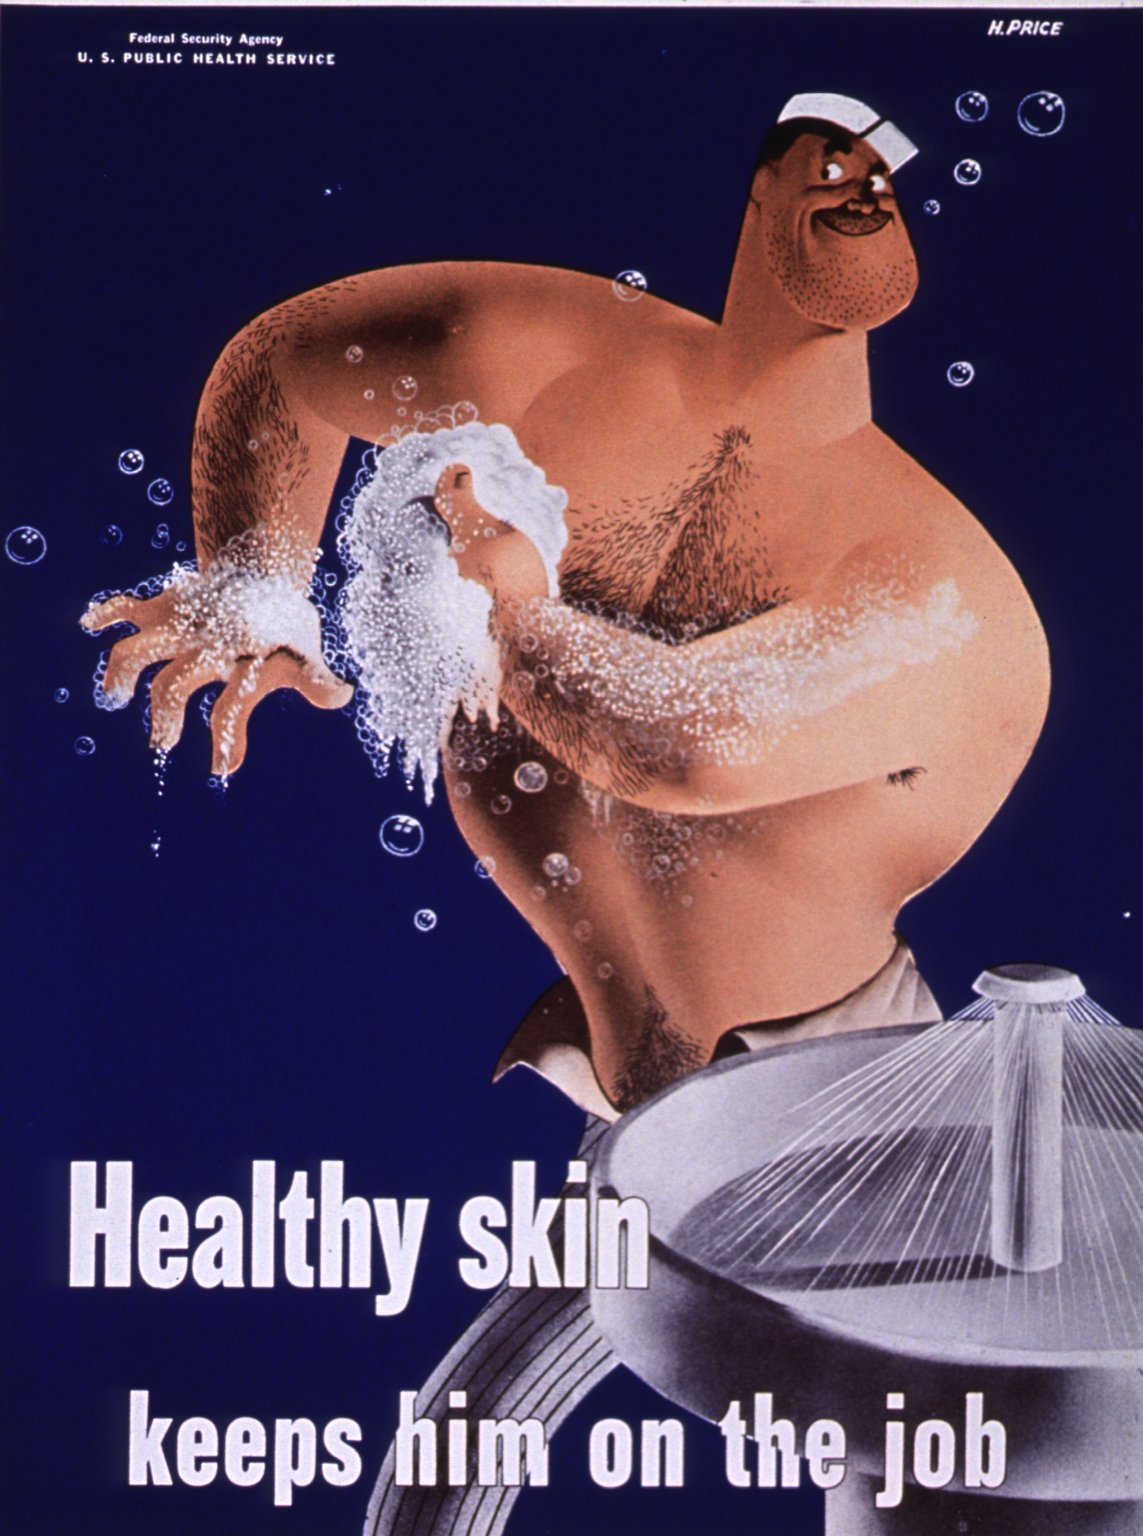 the posters personal hygiene campaign poster